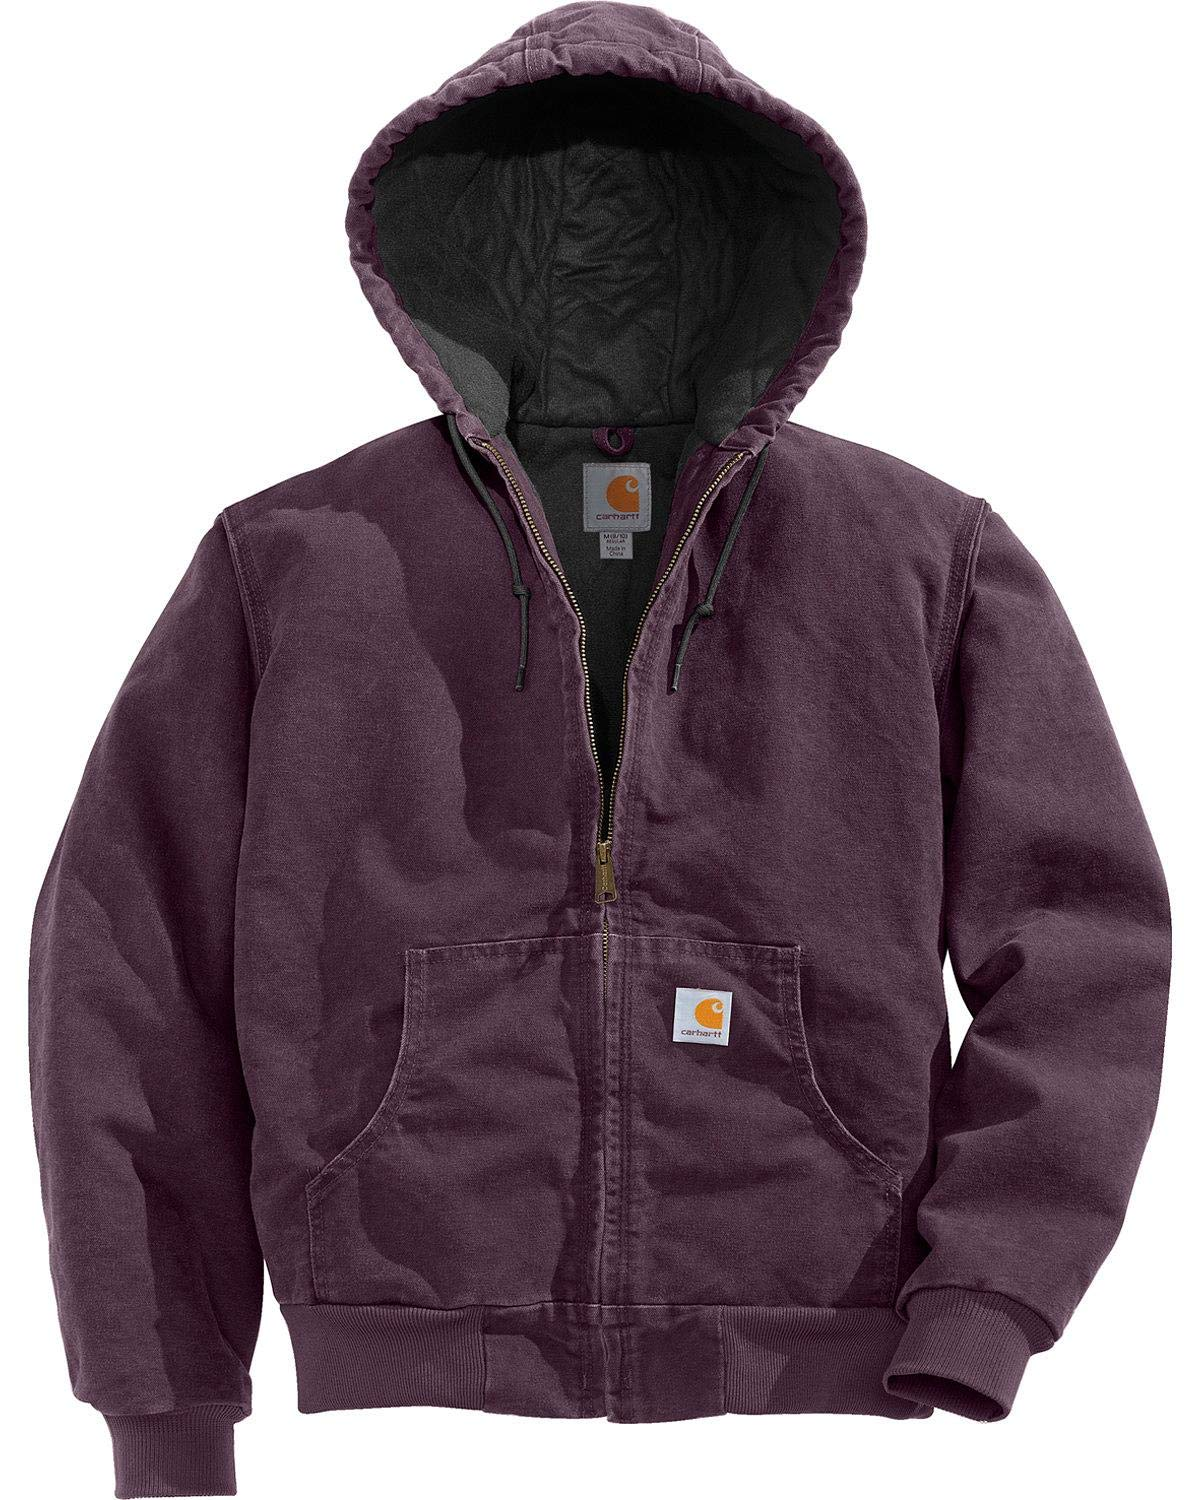 Carhartt Women's Quilted Flannel Lined Sandstone Active Jacket WJ130,Dusty Plum,Medium by Carhartt